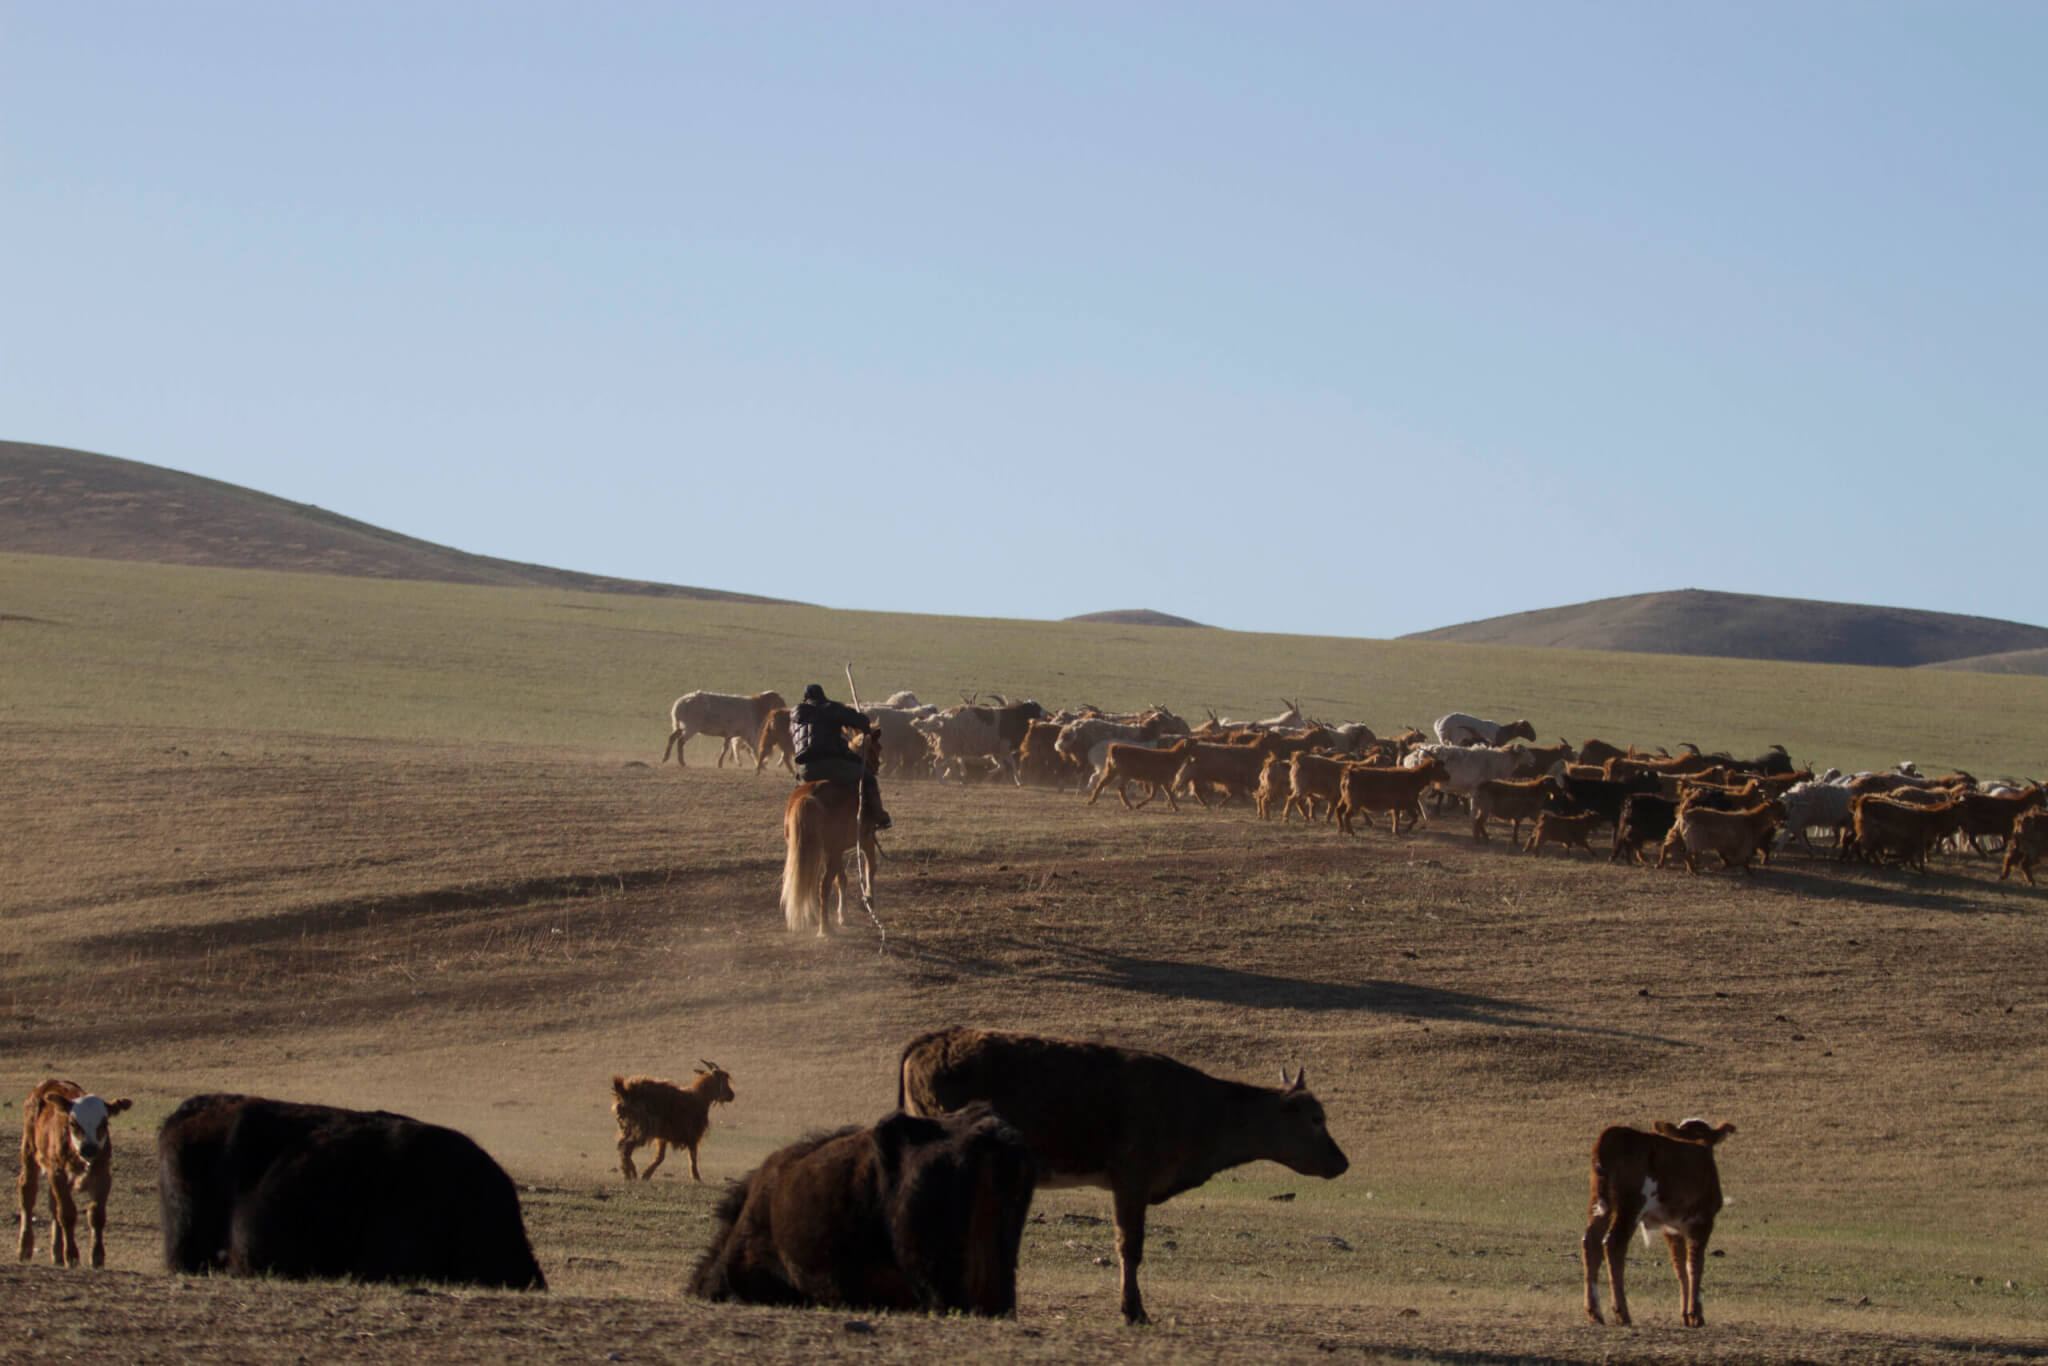 In the grasslands of Mongolia, herders round up animals. For generations, sound has been a significant part of the herding culture. (Photo provided by Bryan Pijanowski)